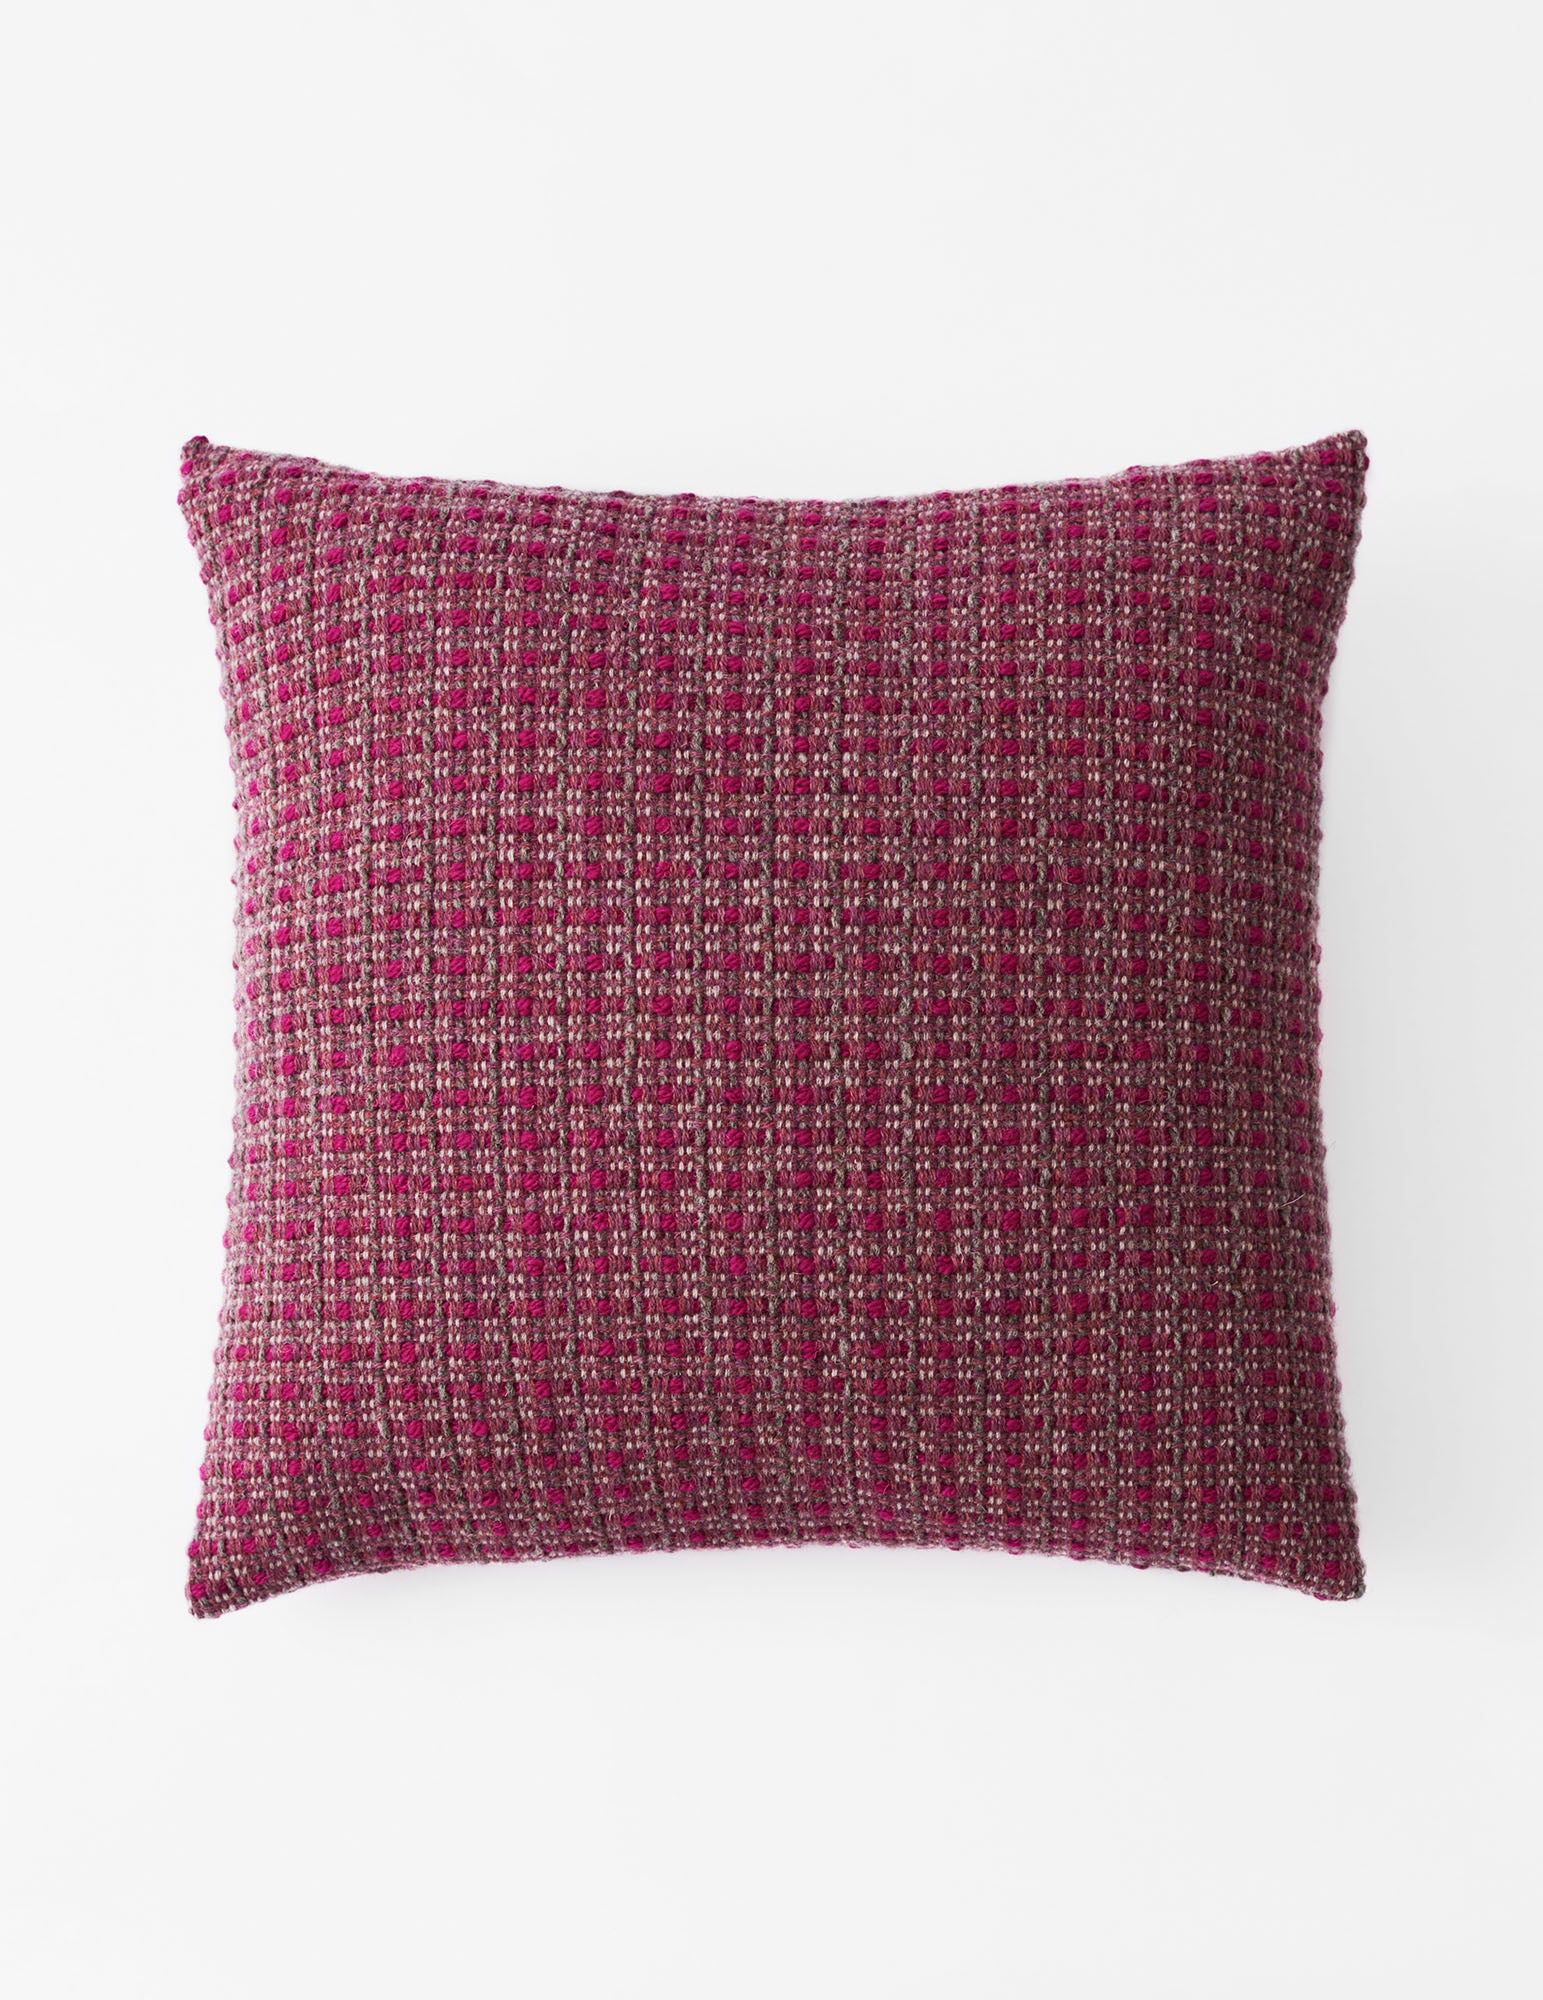 Salthill Tweed Cushion - M4